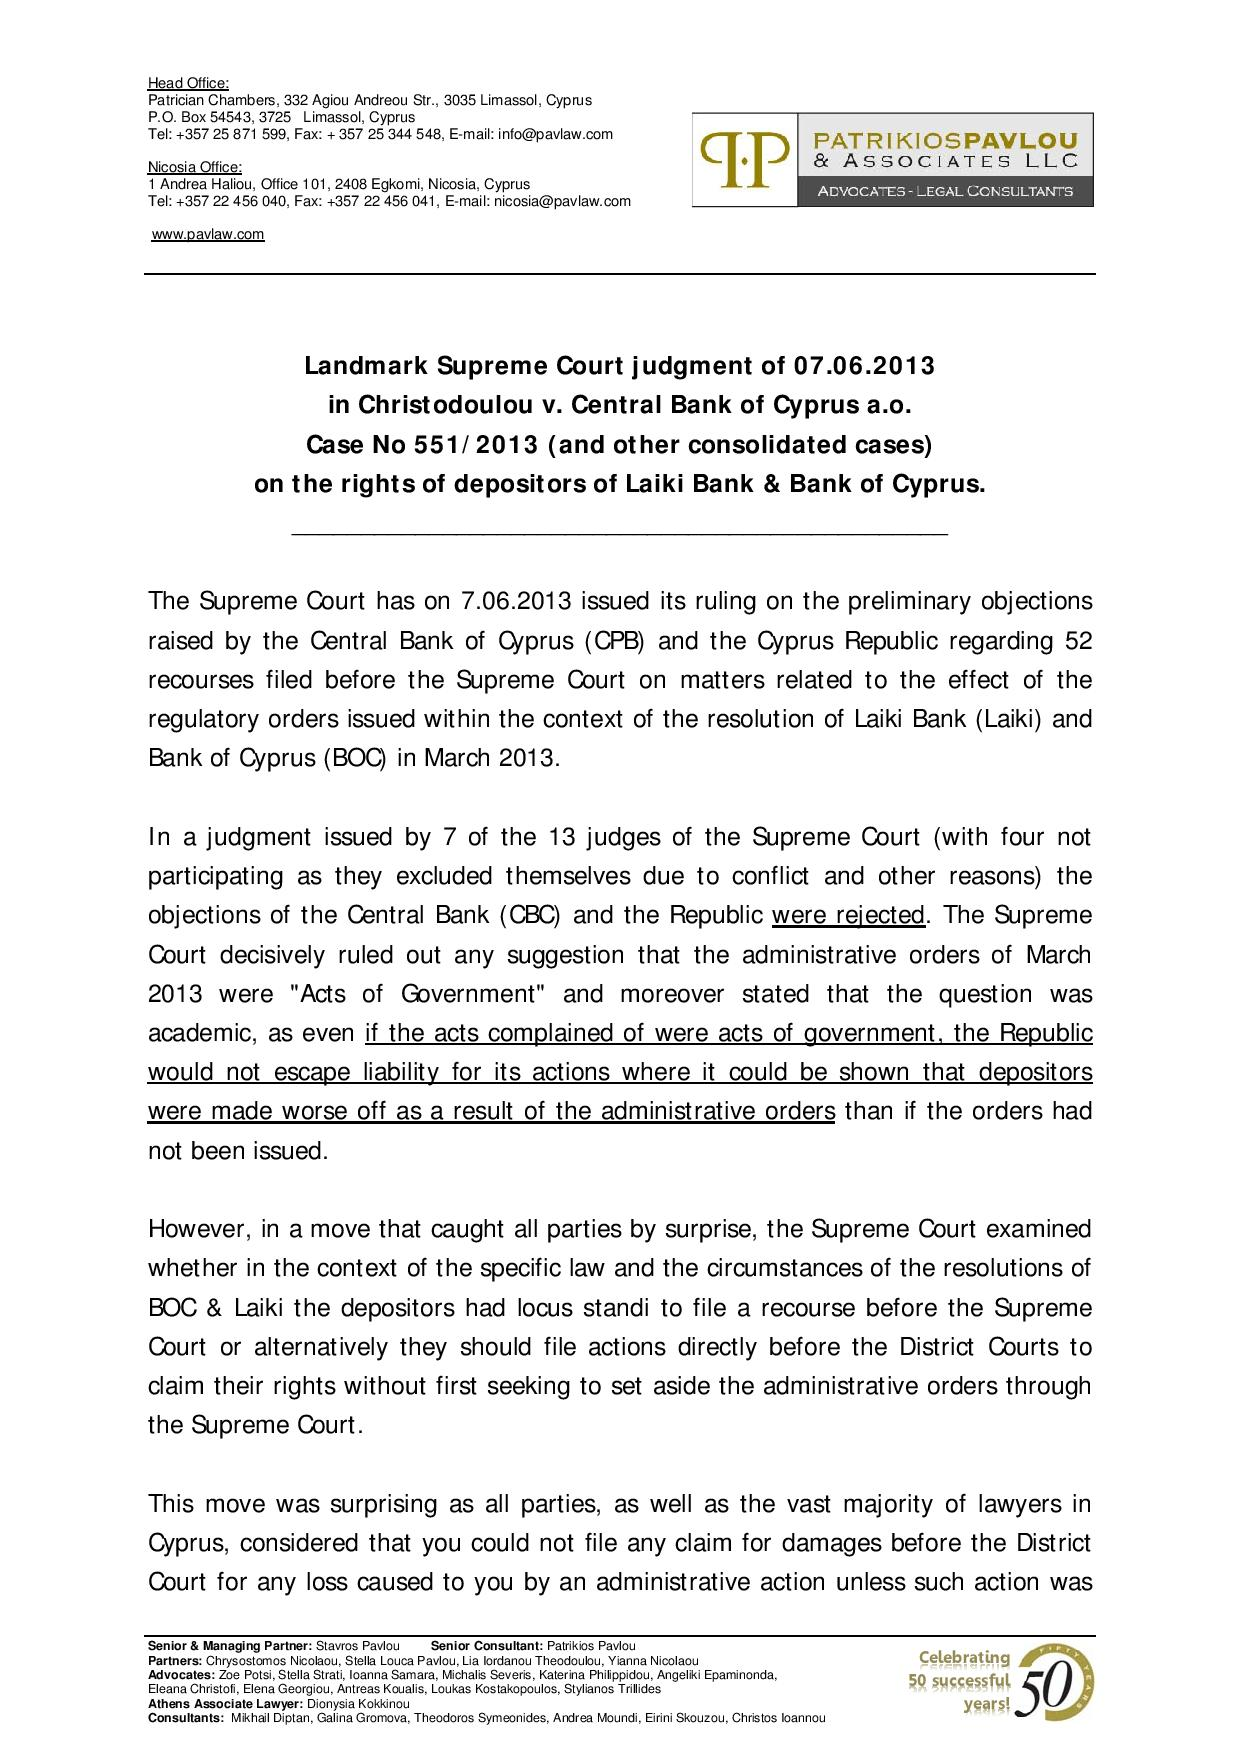 The Landmark Supreme Court Judgment on the rights of depositors